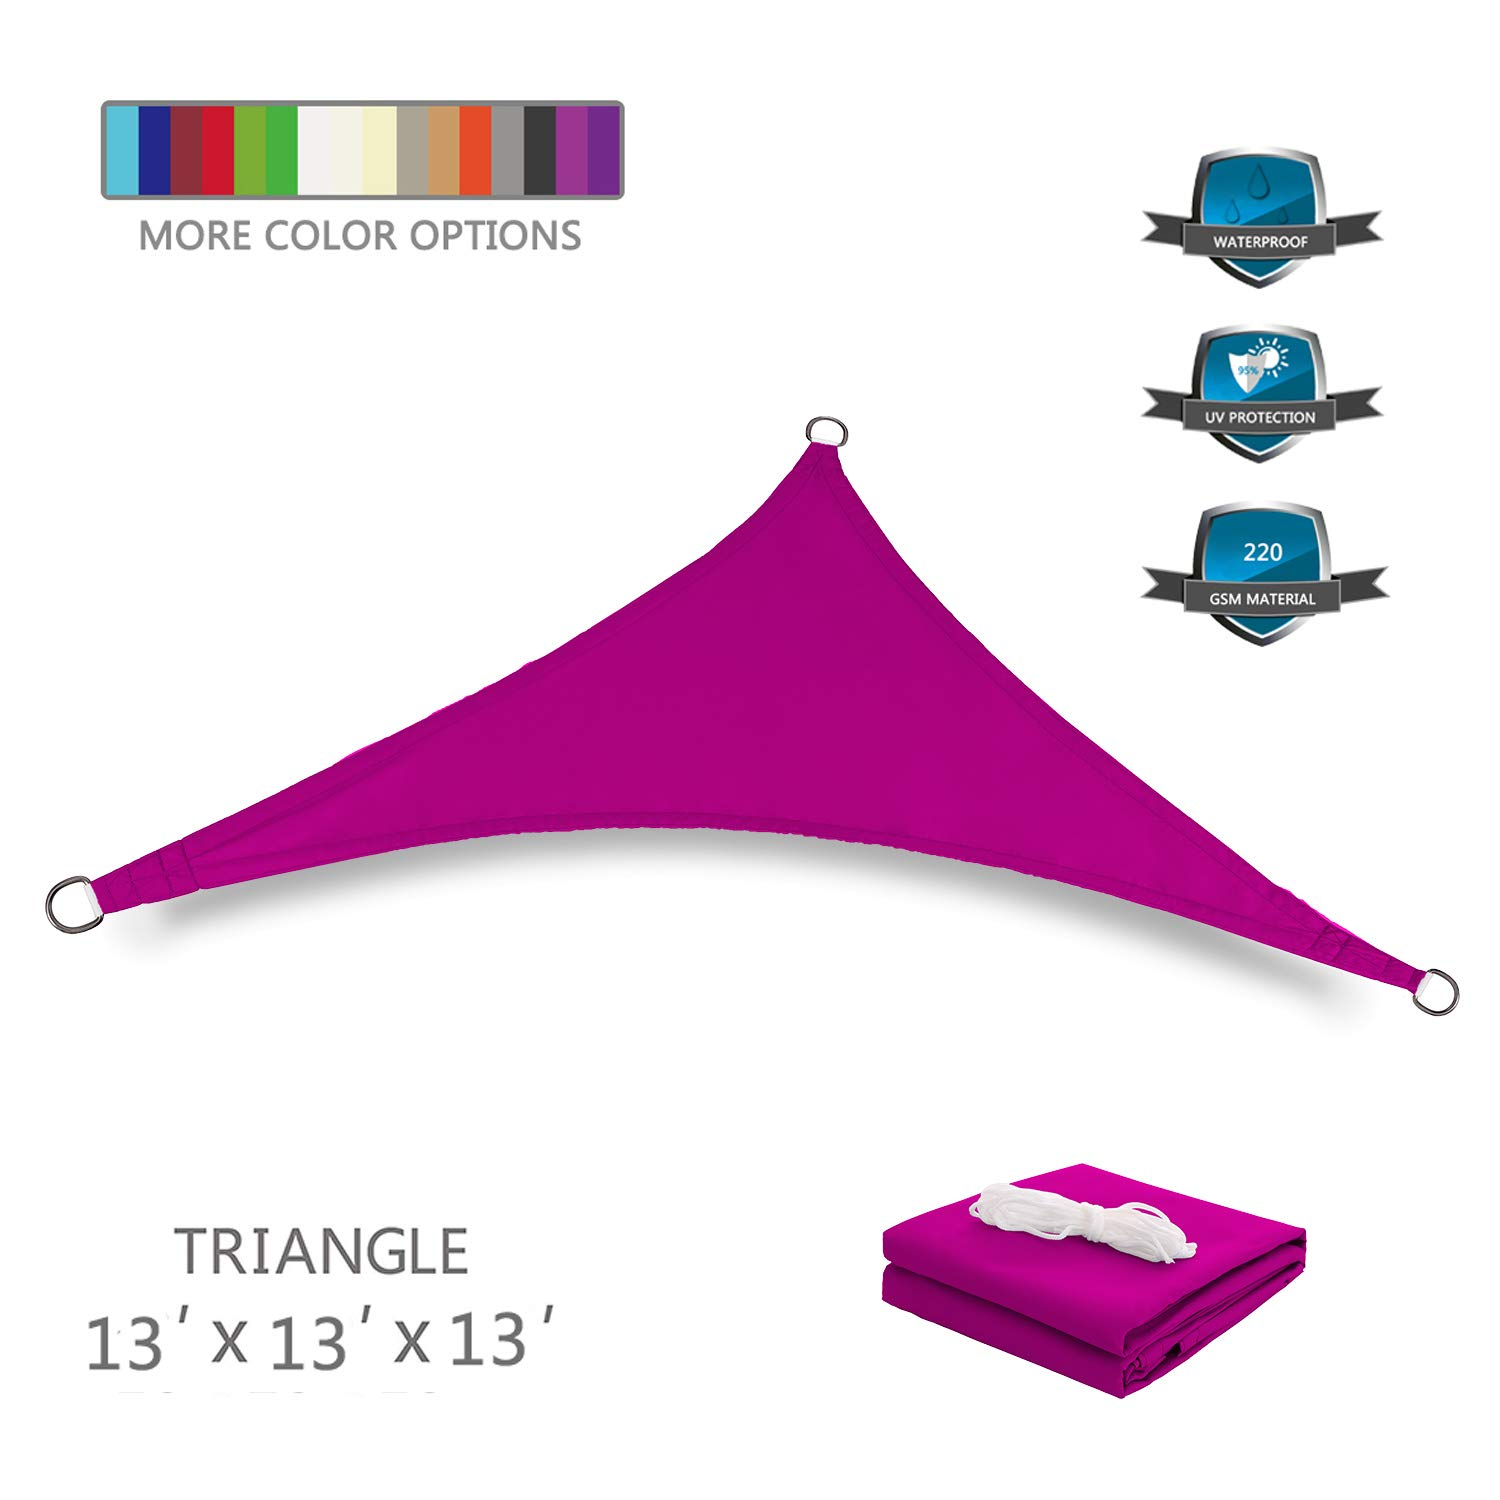 Tuosite Terylene Waterproof Sun Shade Sail UV Blocker Sunshade Patio Equilateral Triangle Knitted 220 GSM Block Fabric Pergola Carport Awning 13' x 13' x 13' in Color Rose Red